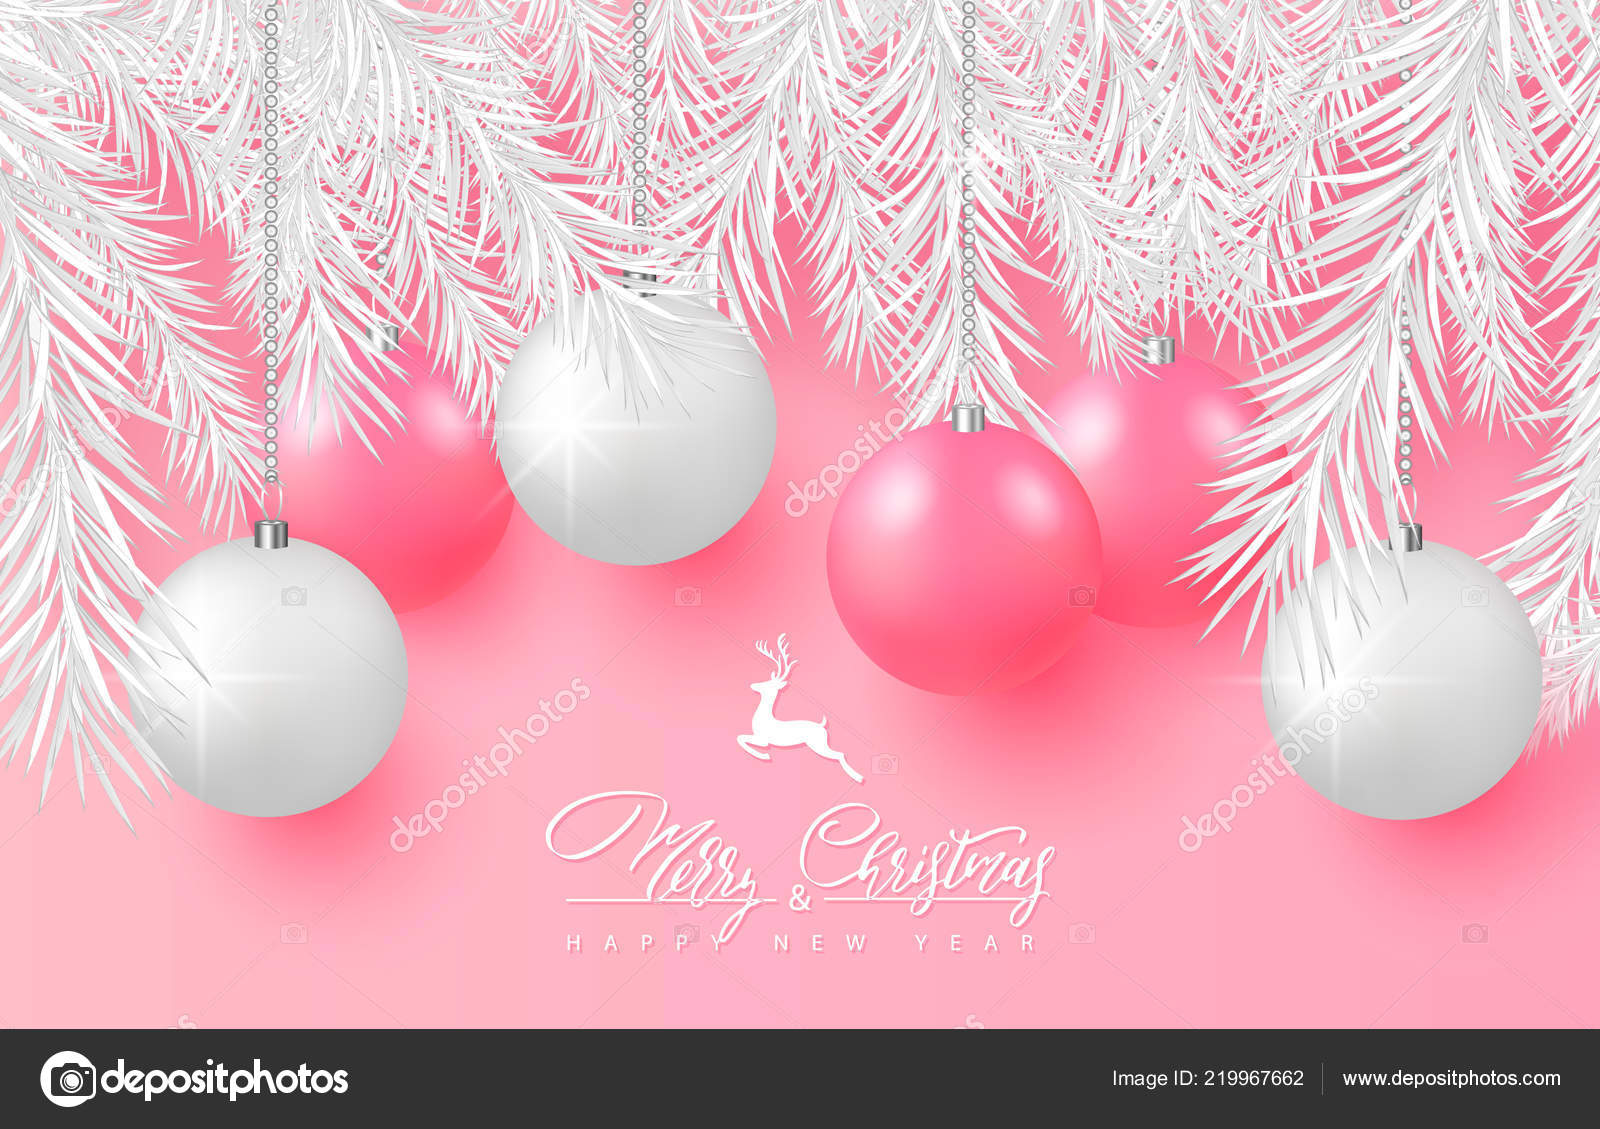 2019 merry christmas and happy new year background for holiday greeting card poster banner beautiful tree ballswhite tree branches and lettering on pink